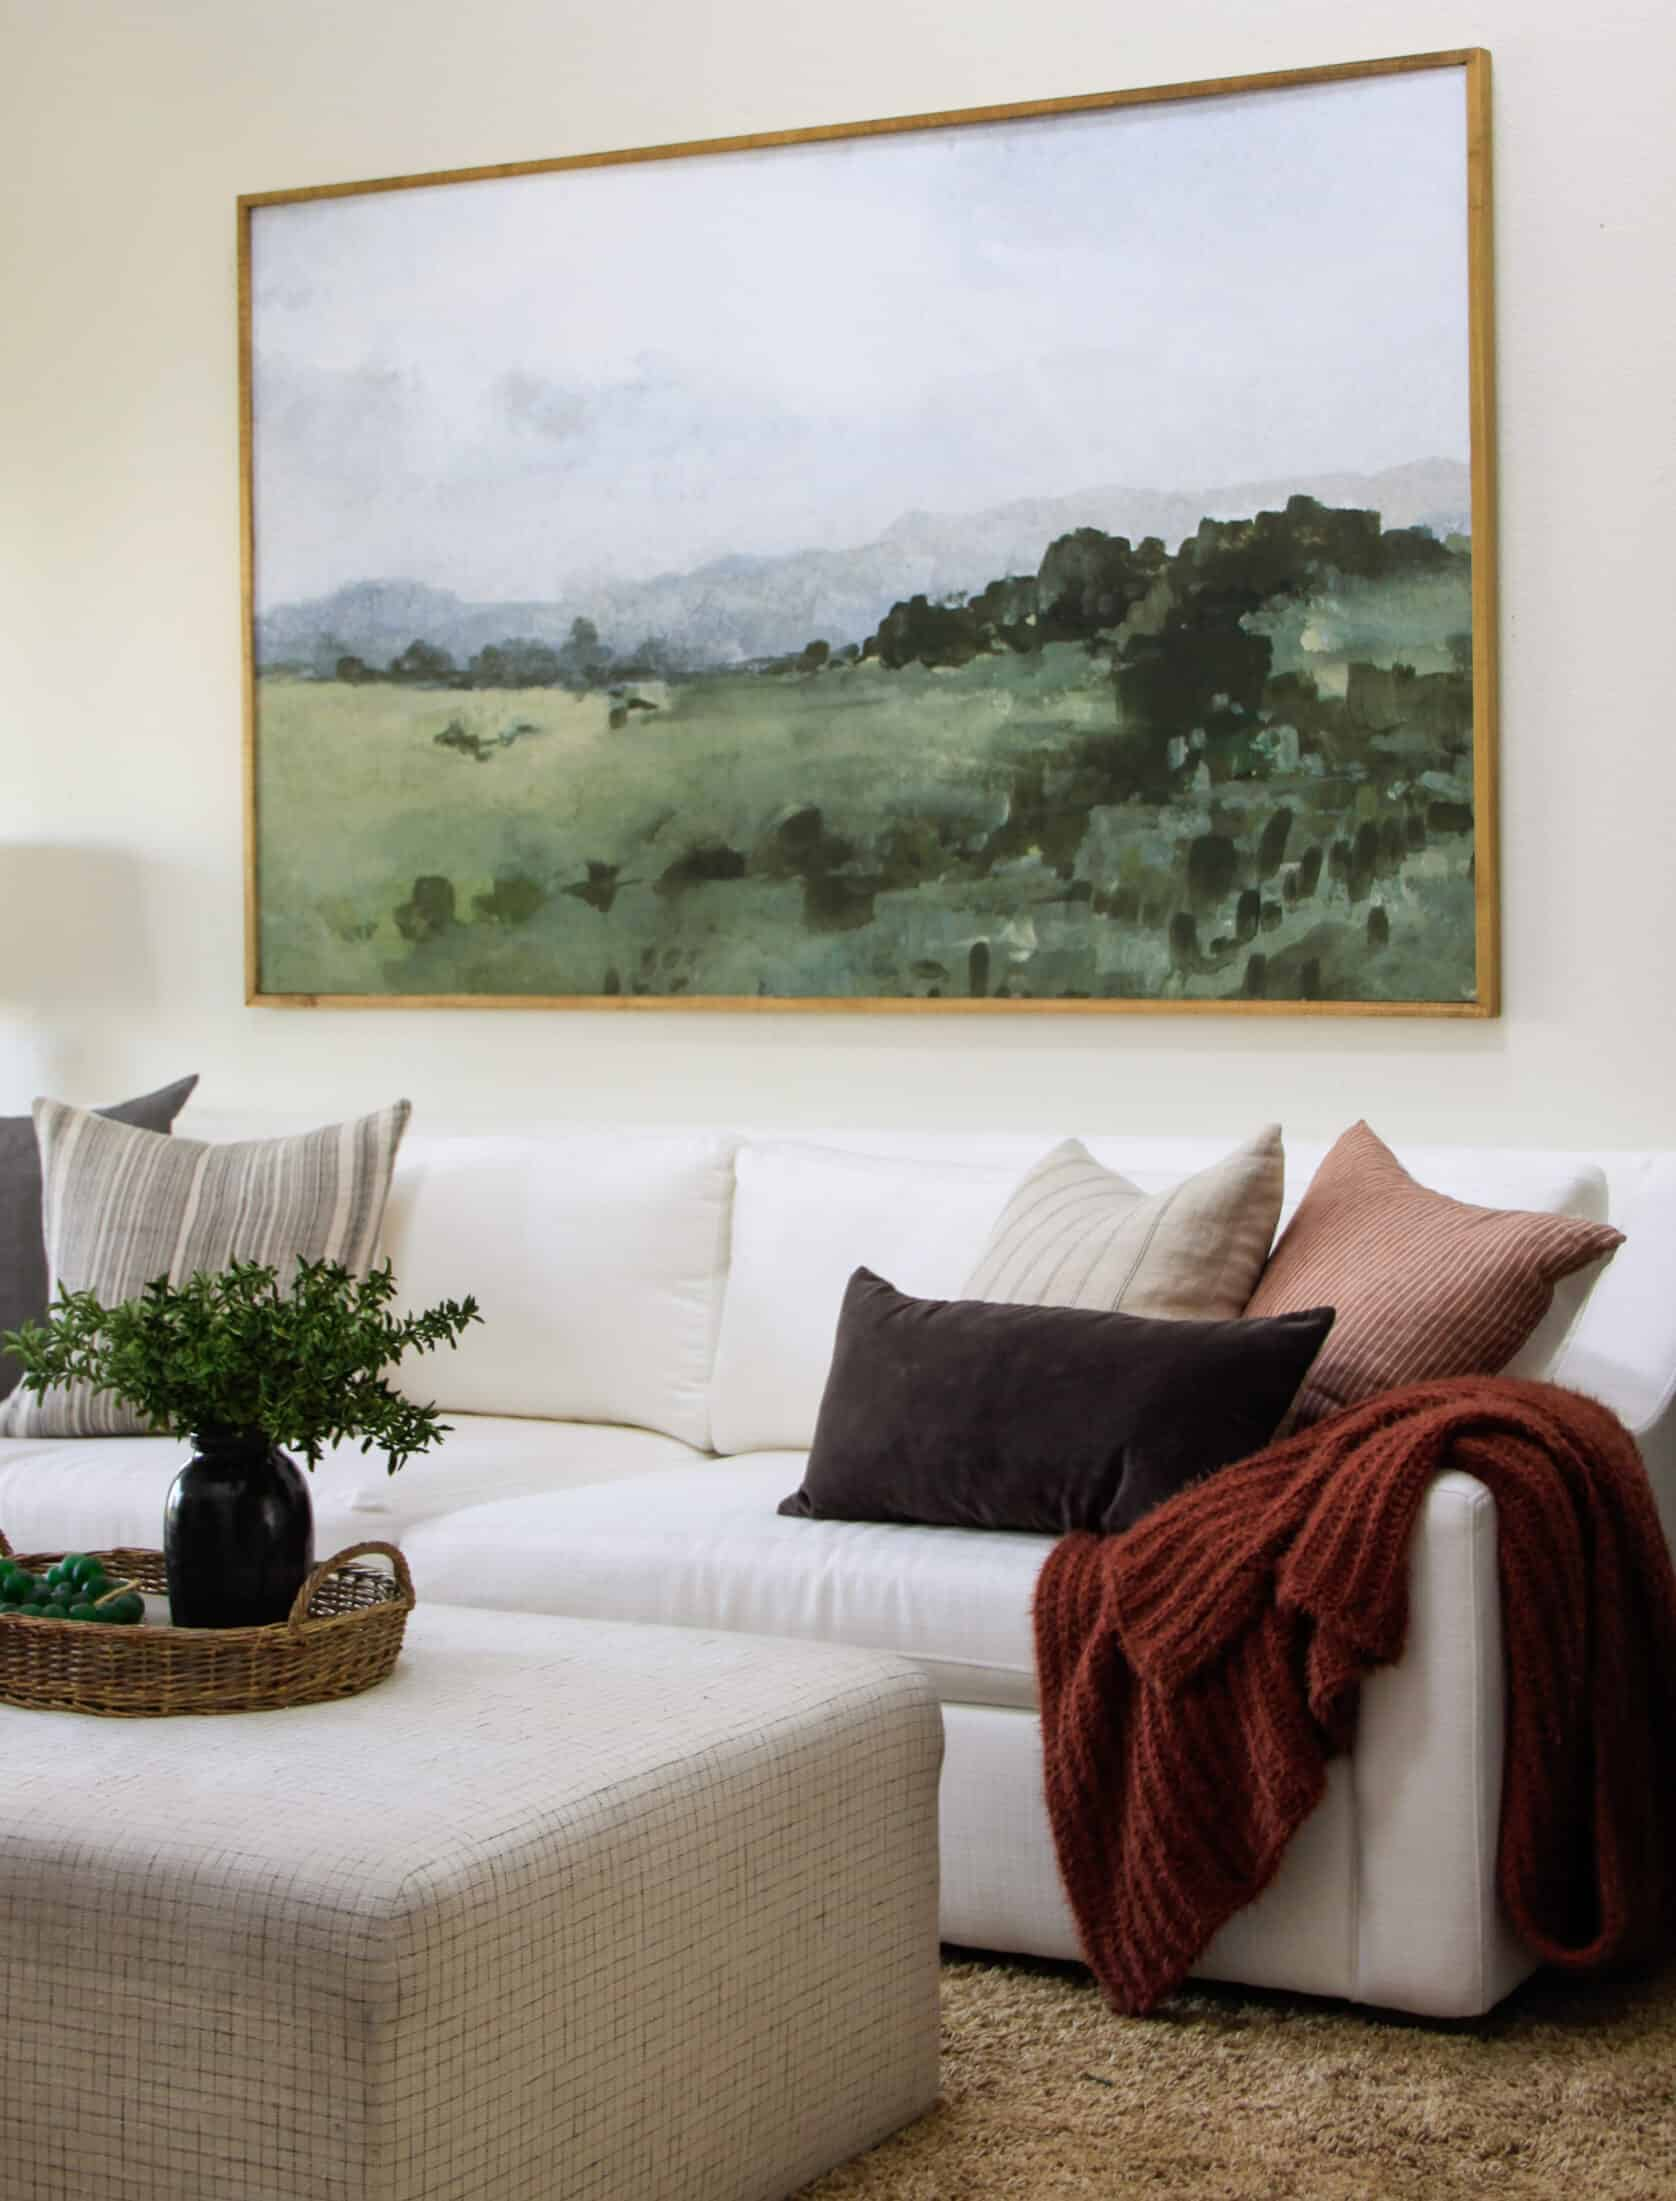 white couch with ottoman, pillows, and framed art above